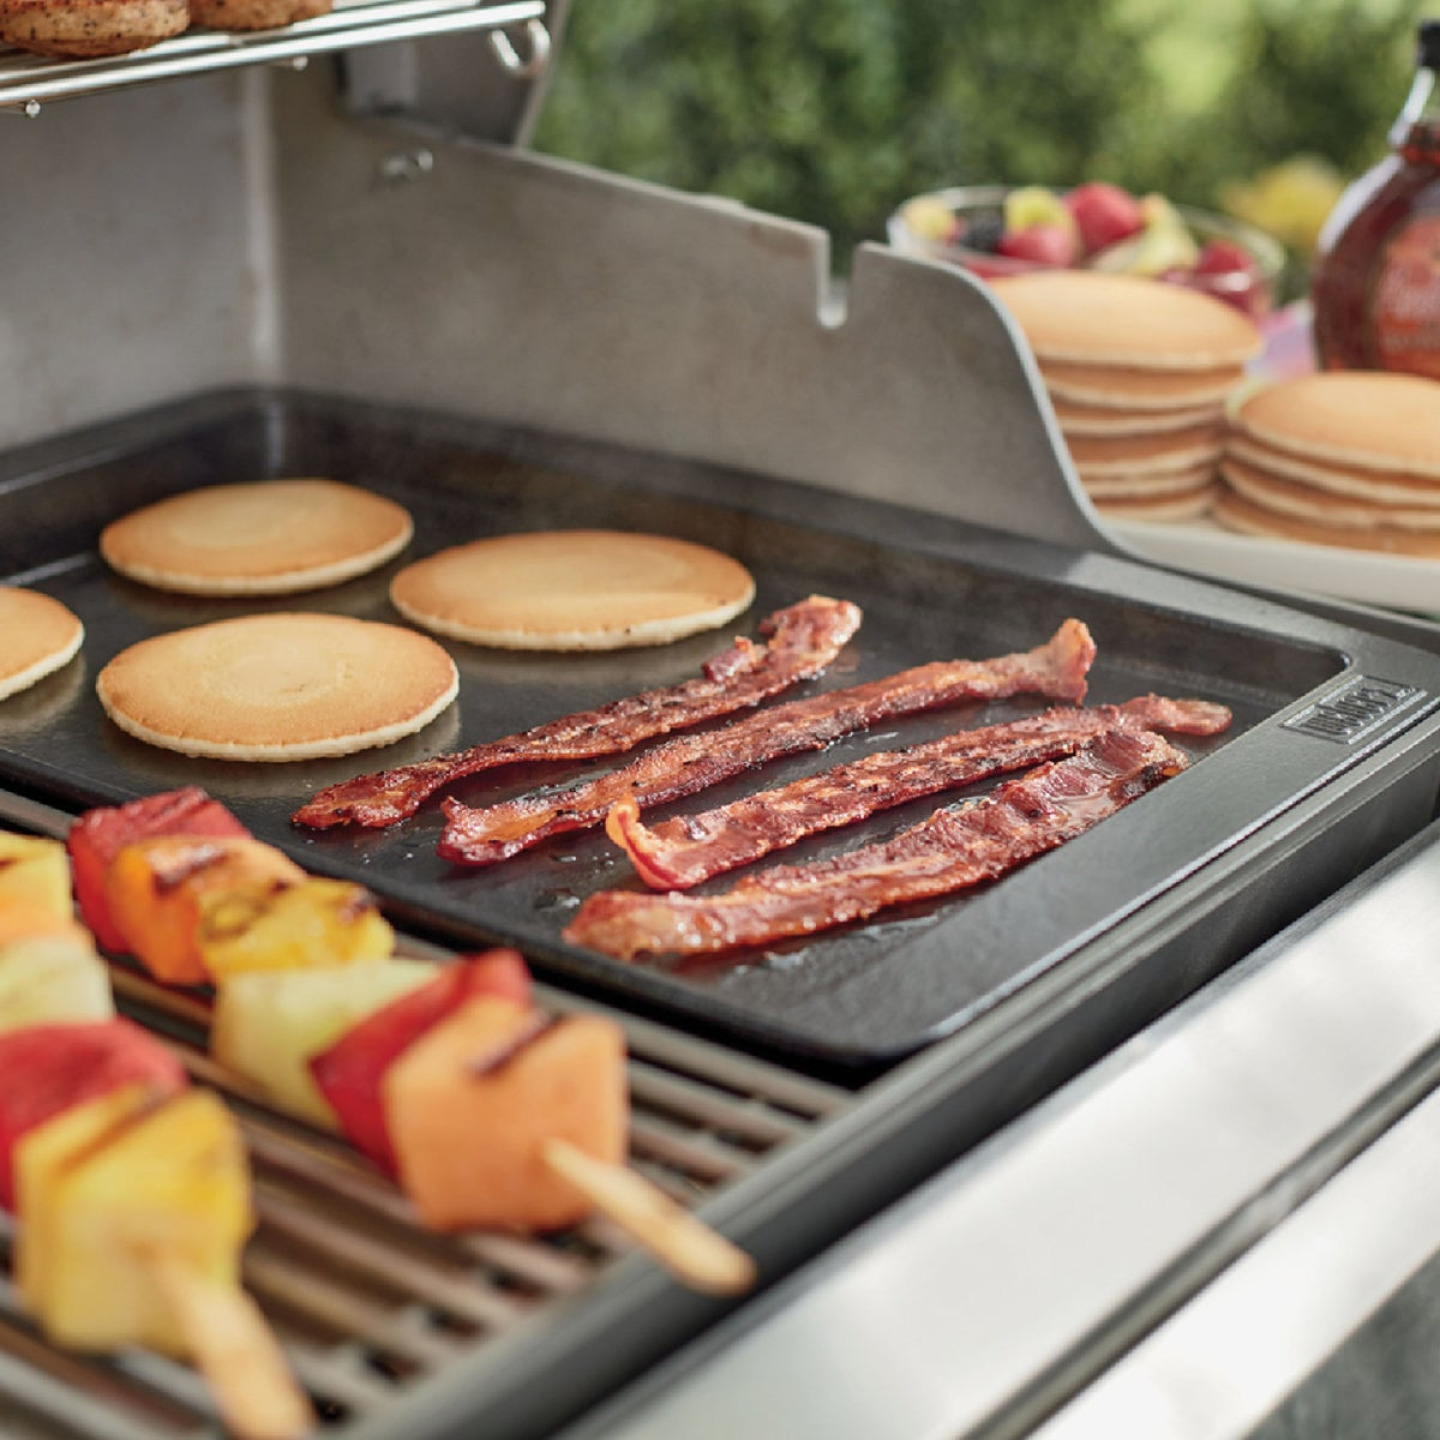 Weber Genesis II 13.2 In. W. x 18.9 In. L. Porcelain-Enameled Cast Iron Gas Grill Griddle Image 2